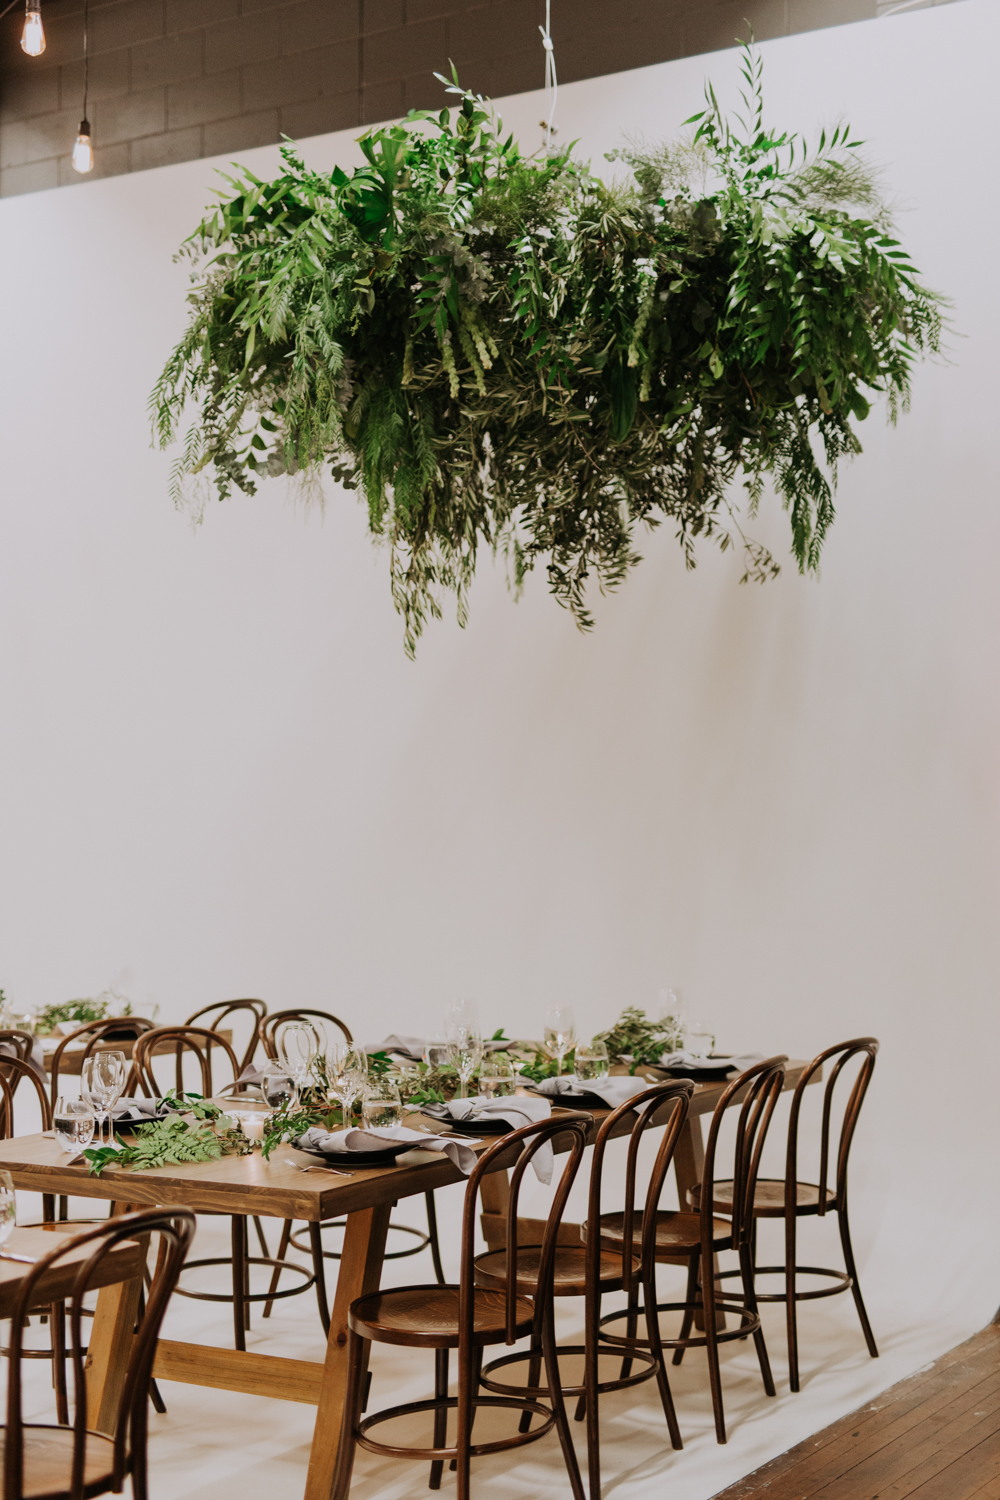 white+white weddings and events carrie and jay real wedding styling bentwood chairs banquet tables timber rustic studio warehouse venue greenery